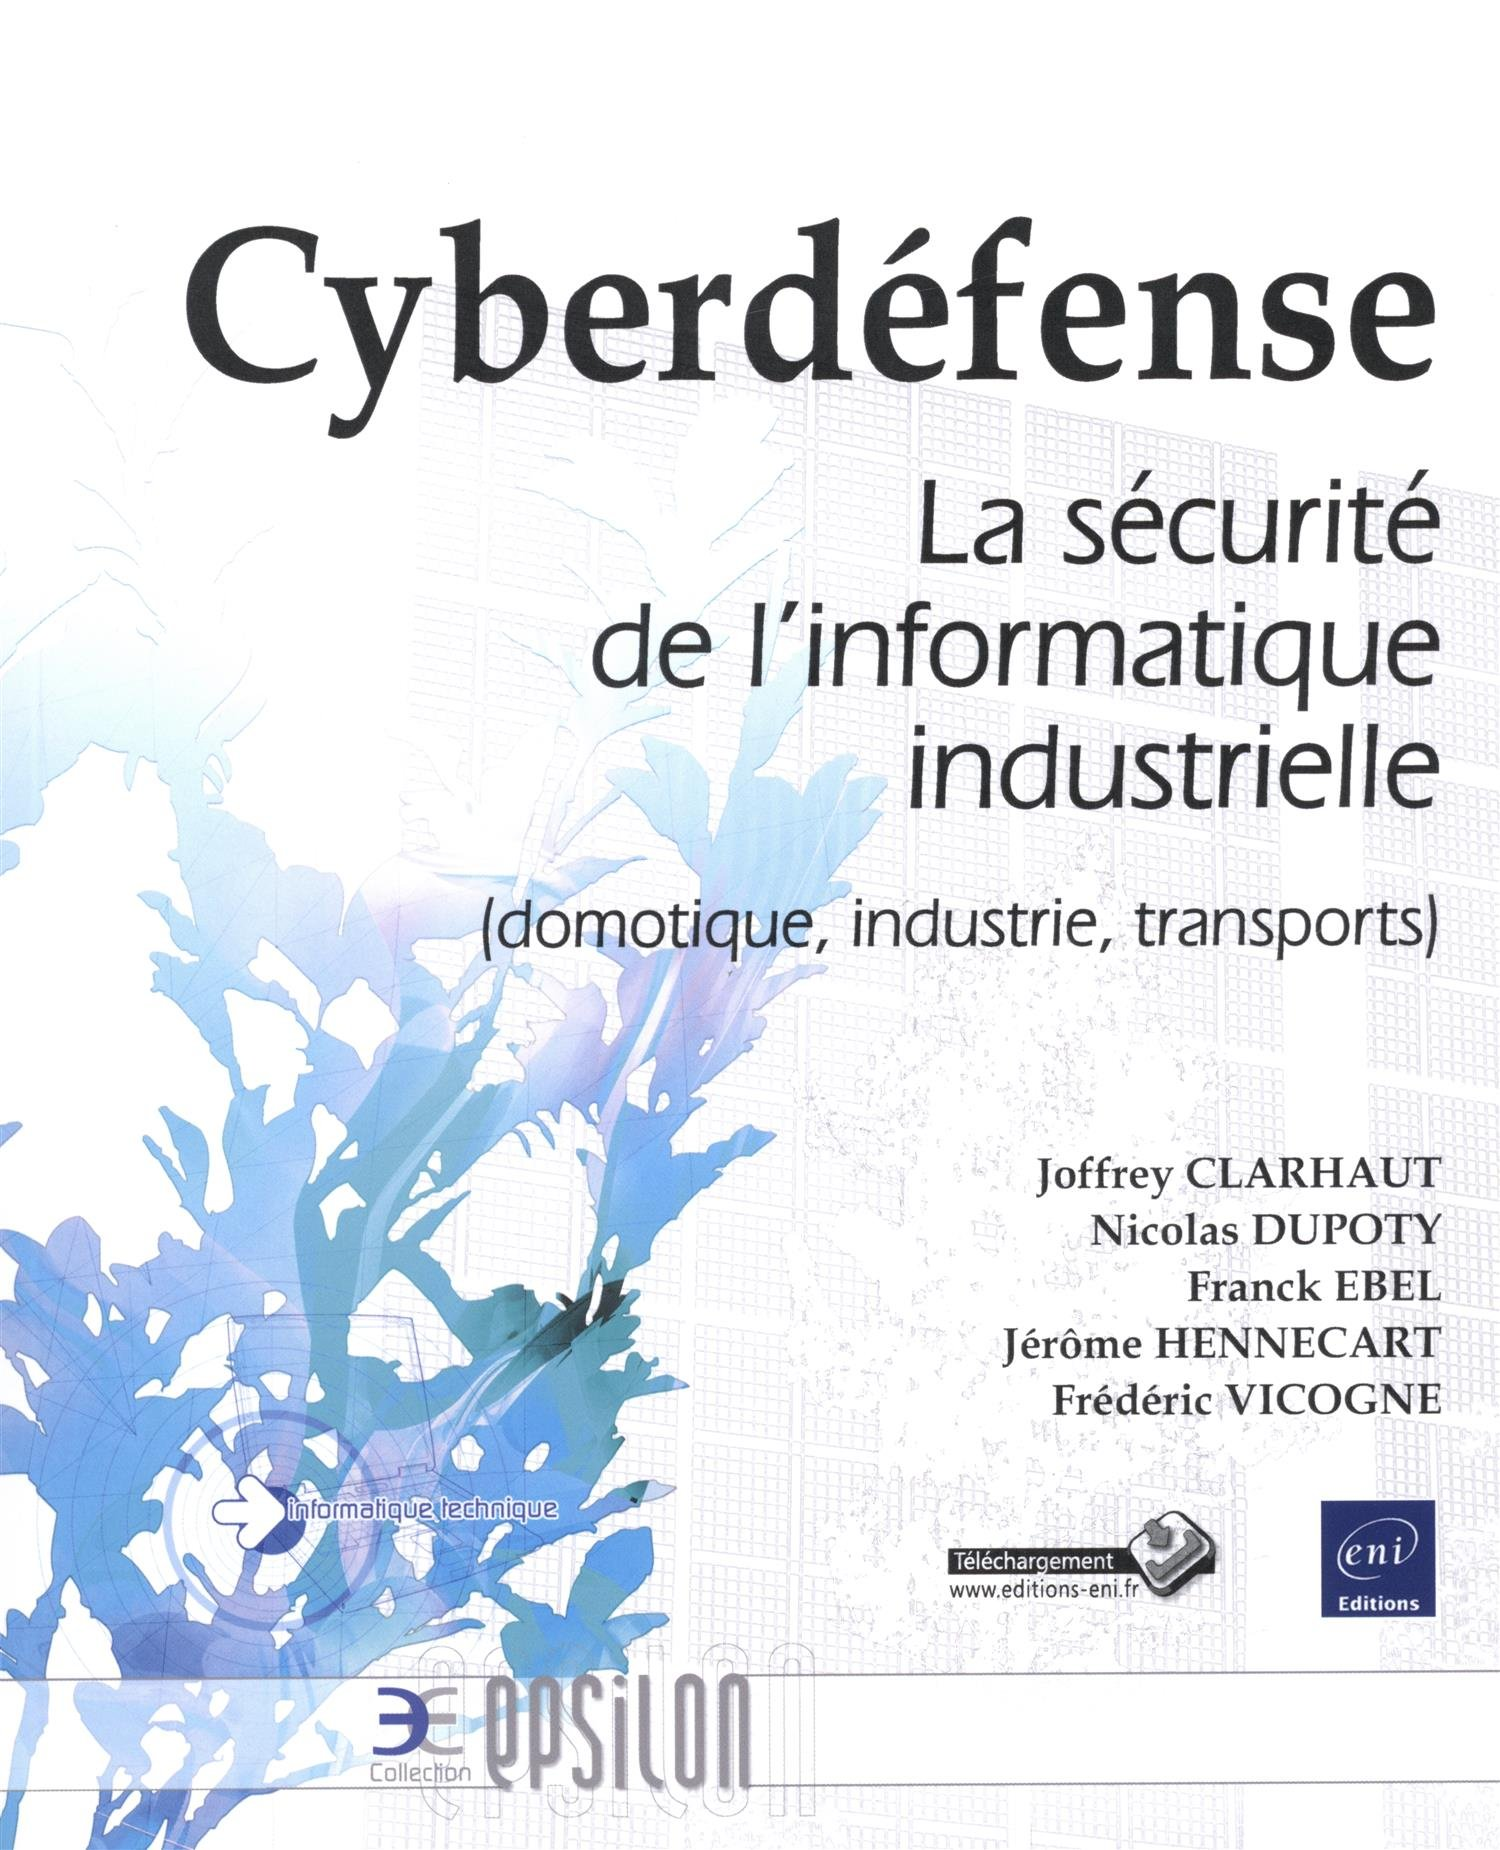 Cyberdéfense : La sécurité de l'informatique industrielle domotique,  industrie, transports Epsilon: Amazon.es: Clarhaut, Joffrey, Dupoty,  Nicolas, Ebel, Franck, Hennecart, Jérôme, Vicogne, Frédéric: Libros en  idiomas extranjeros